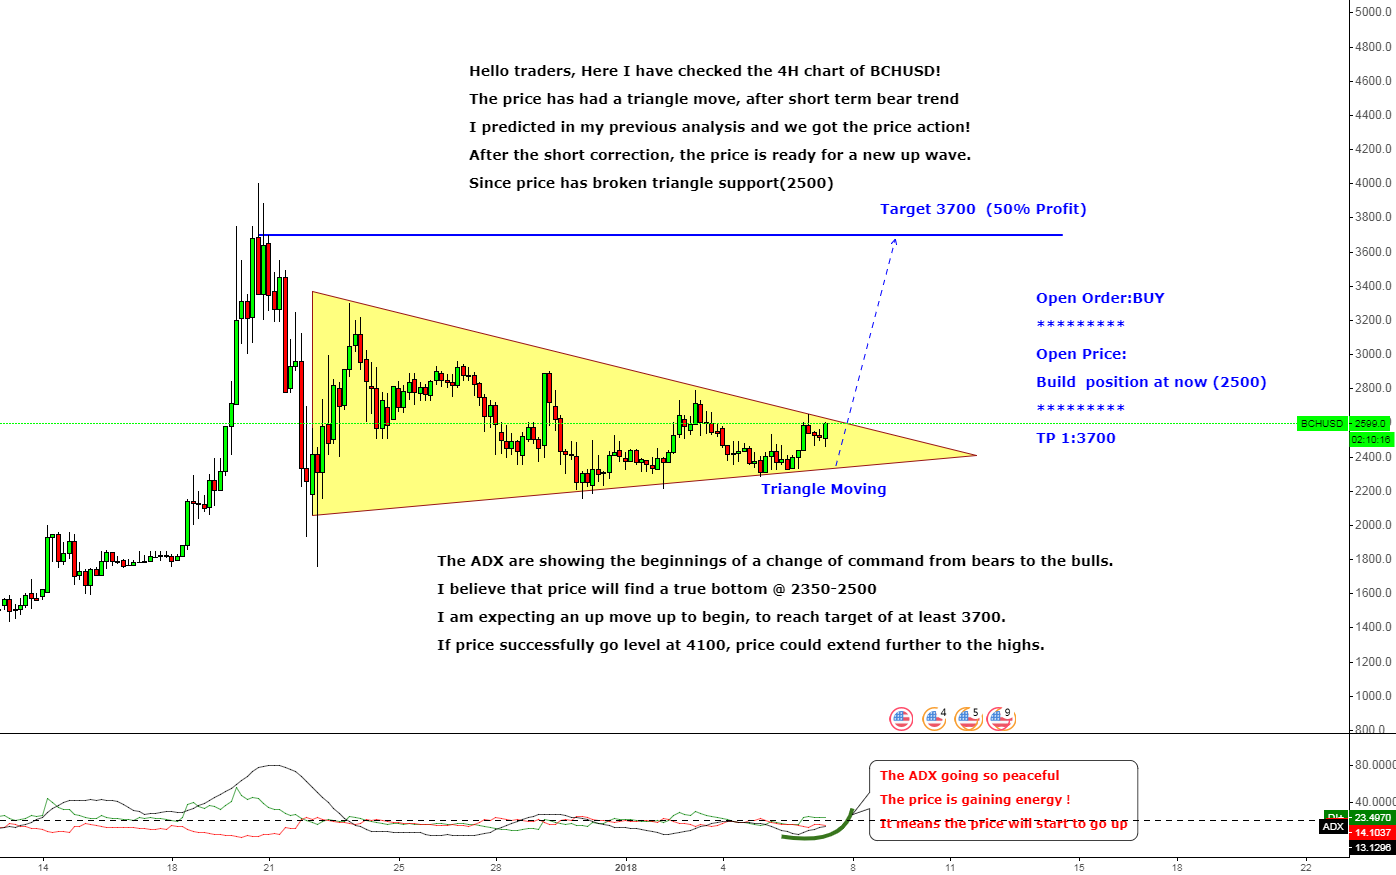 BCHUSD Perfect Triangle Moving